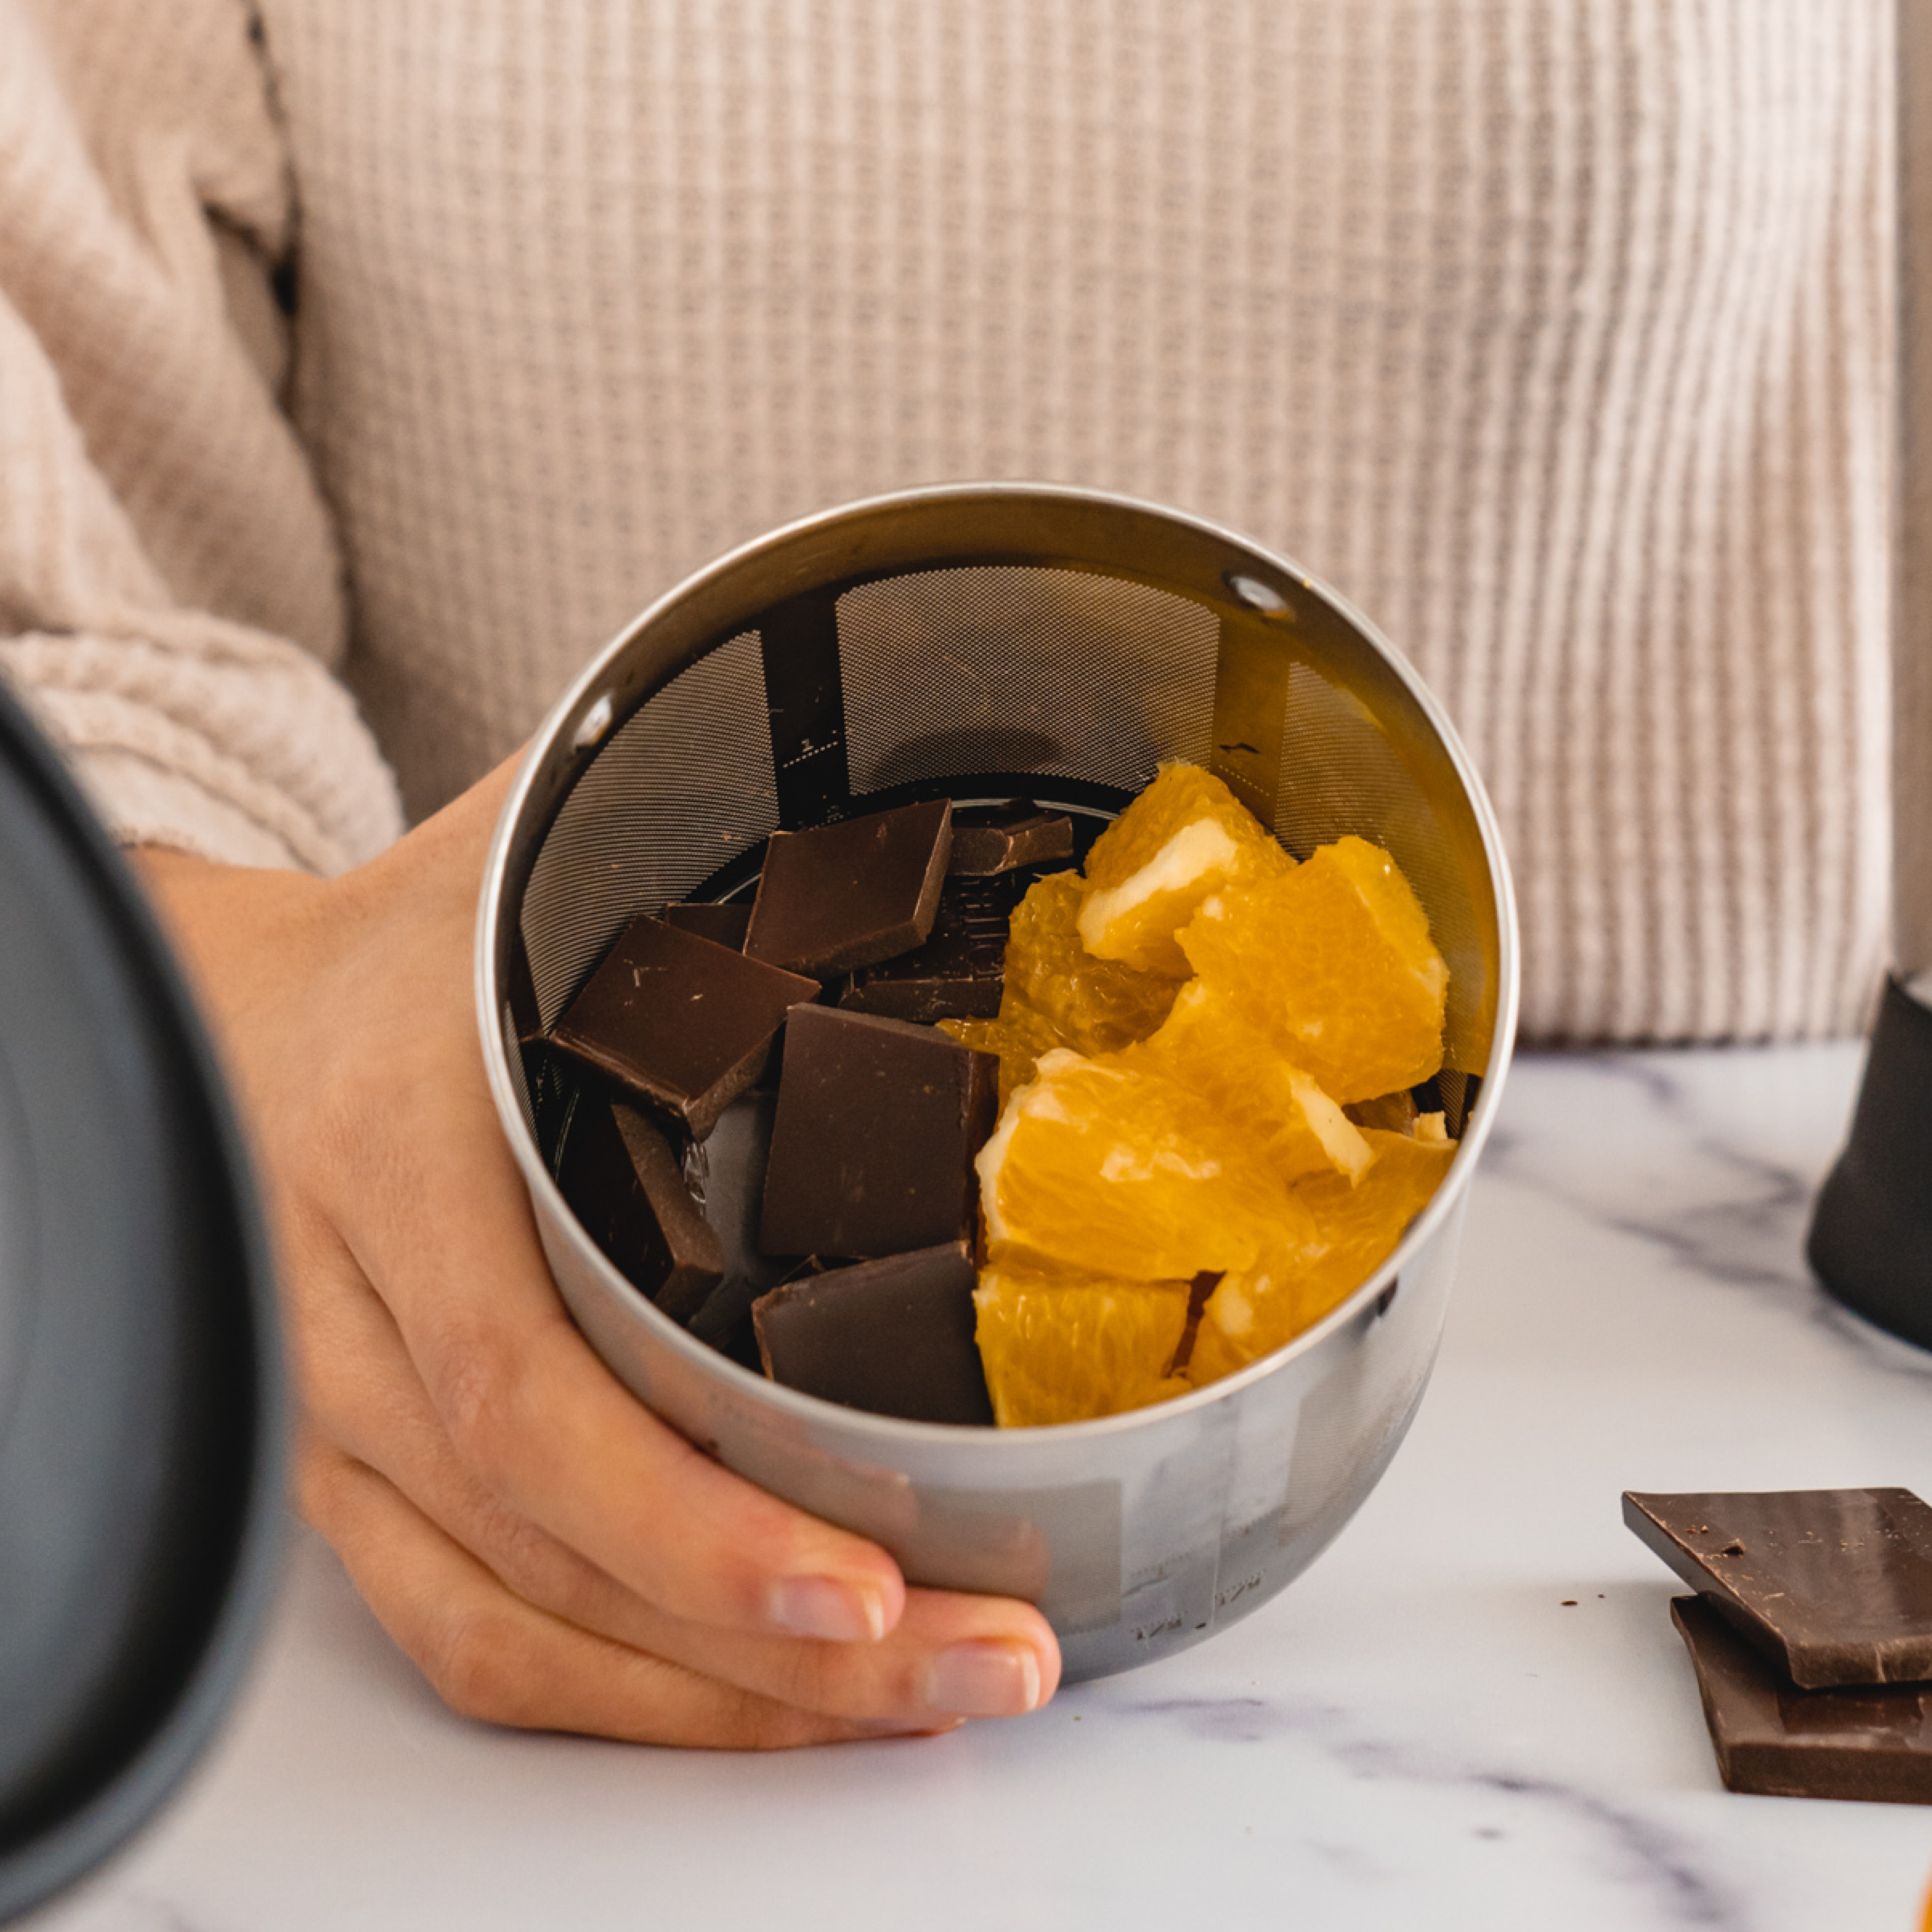 chocolate and orange slices in a filter basket of an Almond Cow